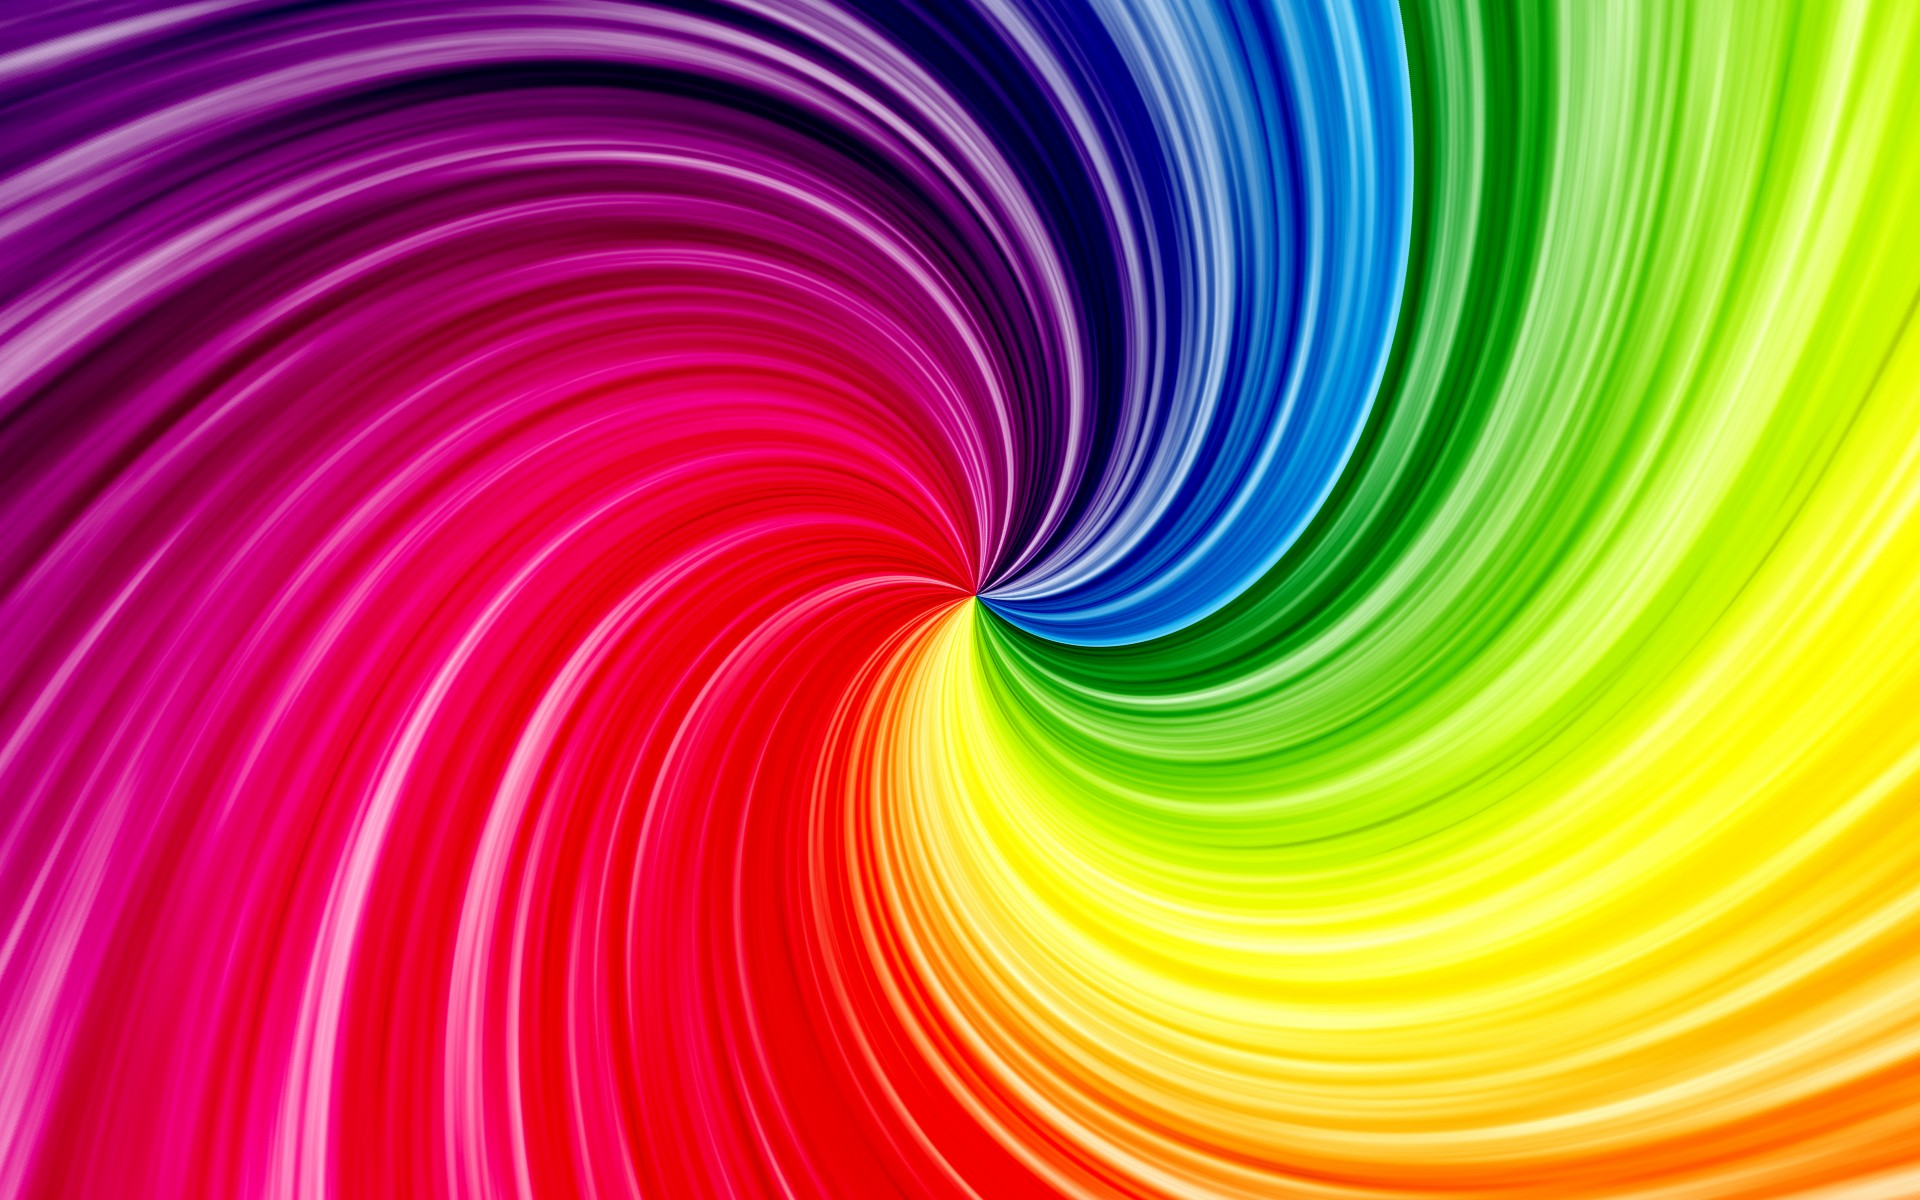 Bright colorful waves f wallpaper background